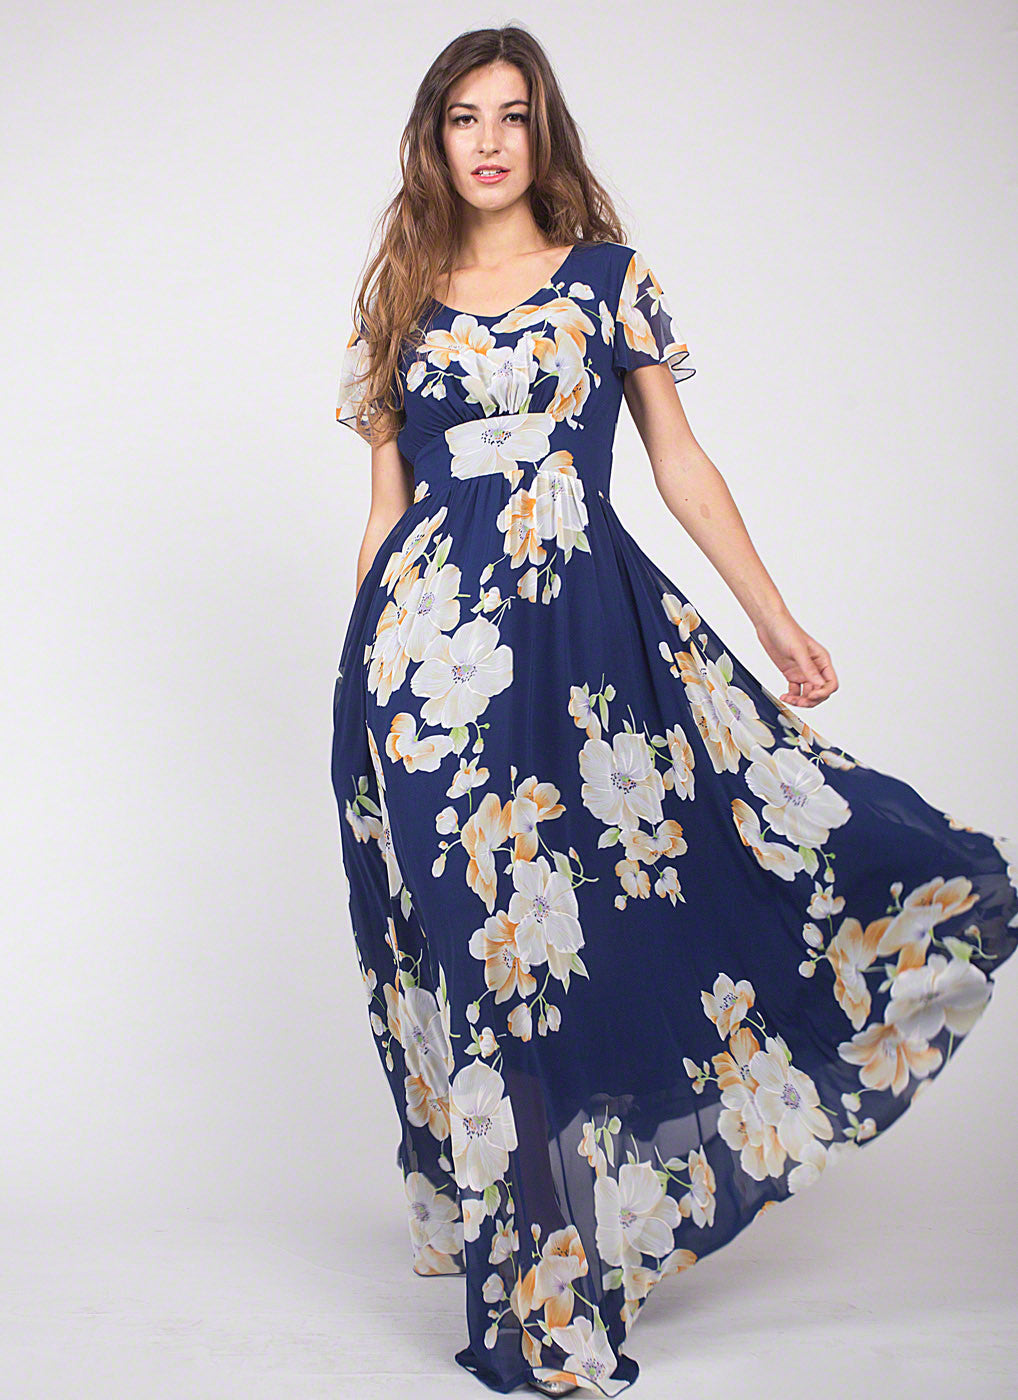 2b2e0a4f2a60 Dark Blue Chiffon Maxi Length Evening Dress with Large White Floral Print,  Elegant Blue Long